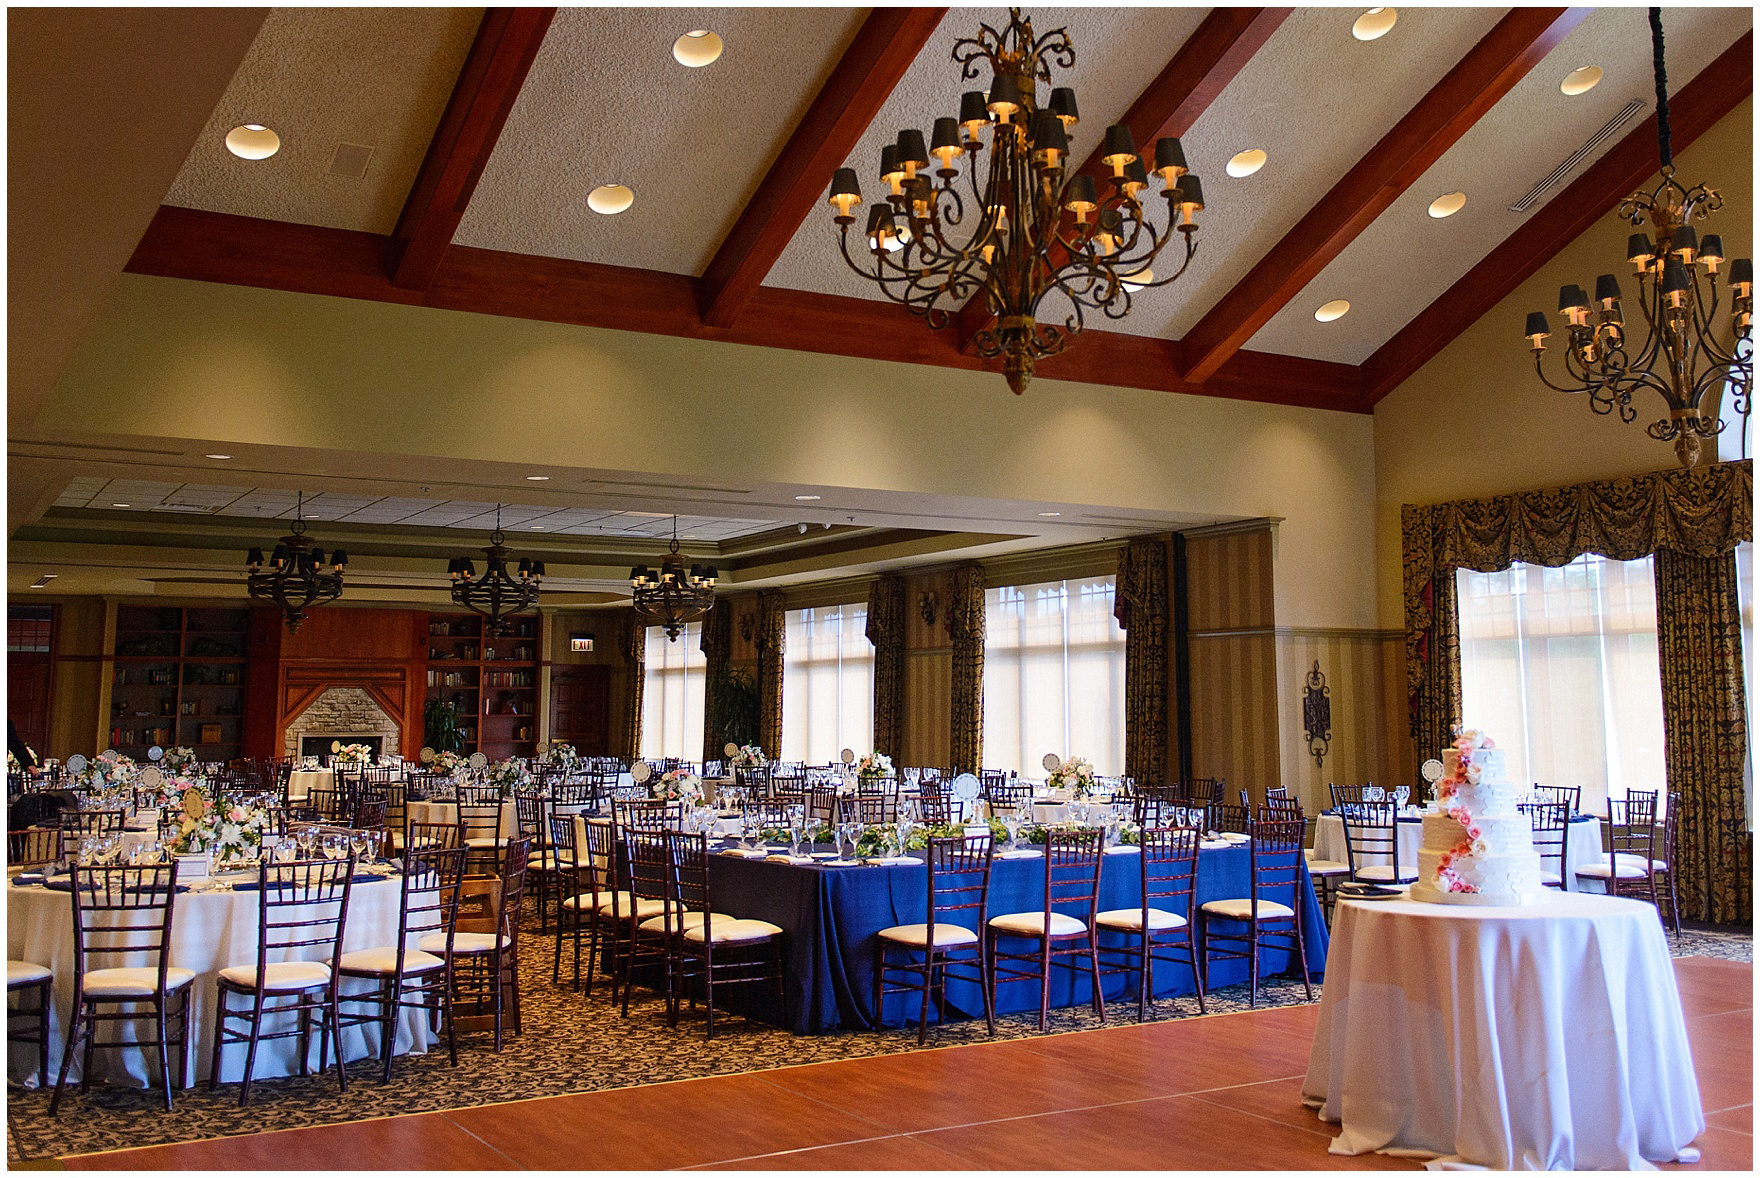 The reception room is set up for a Biltmore Country Club Barrington wedding.